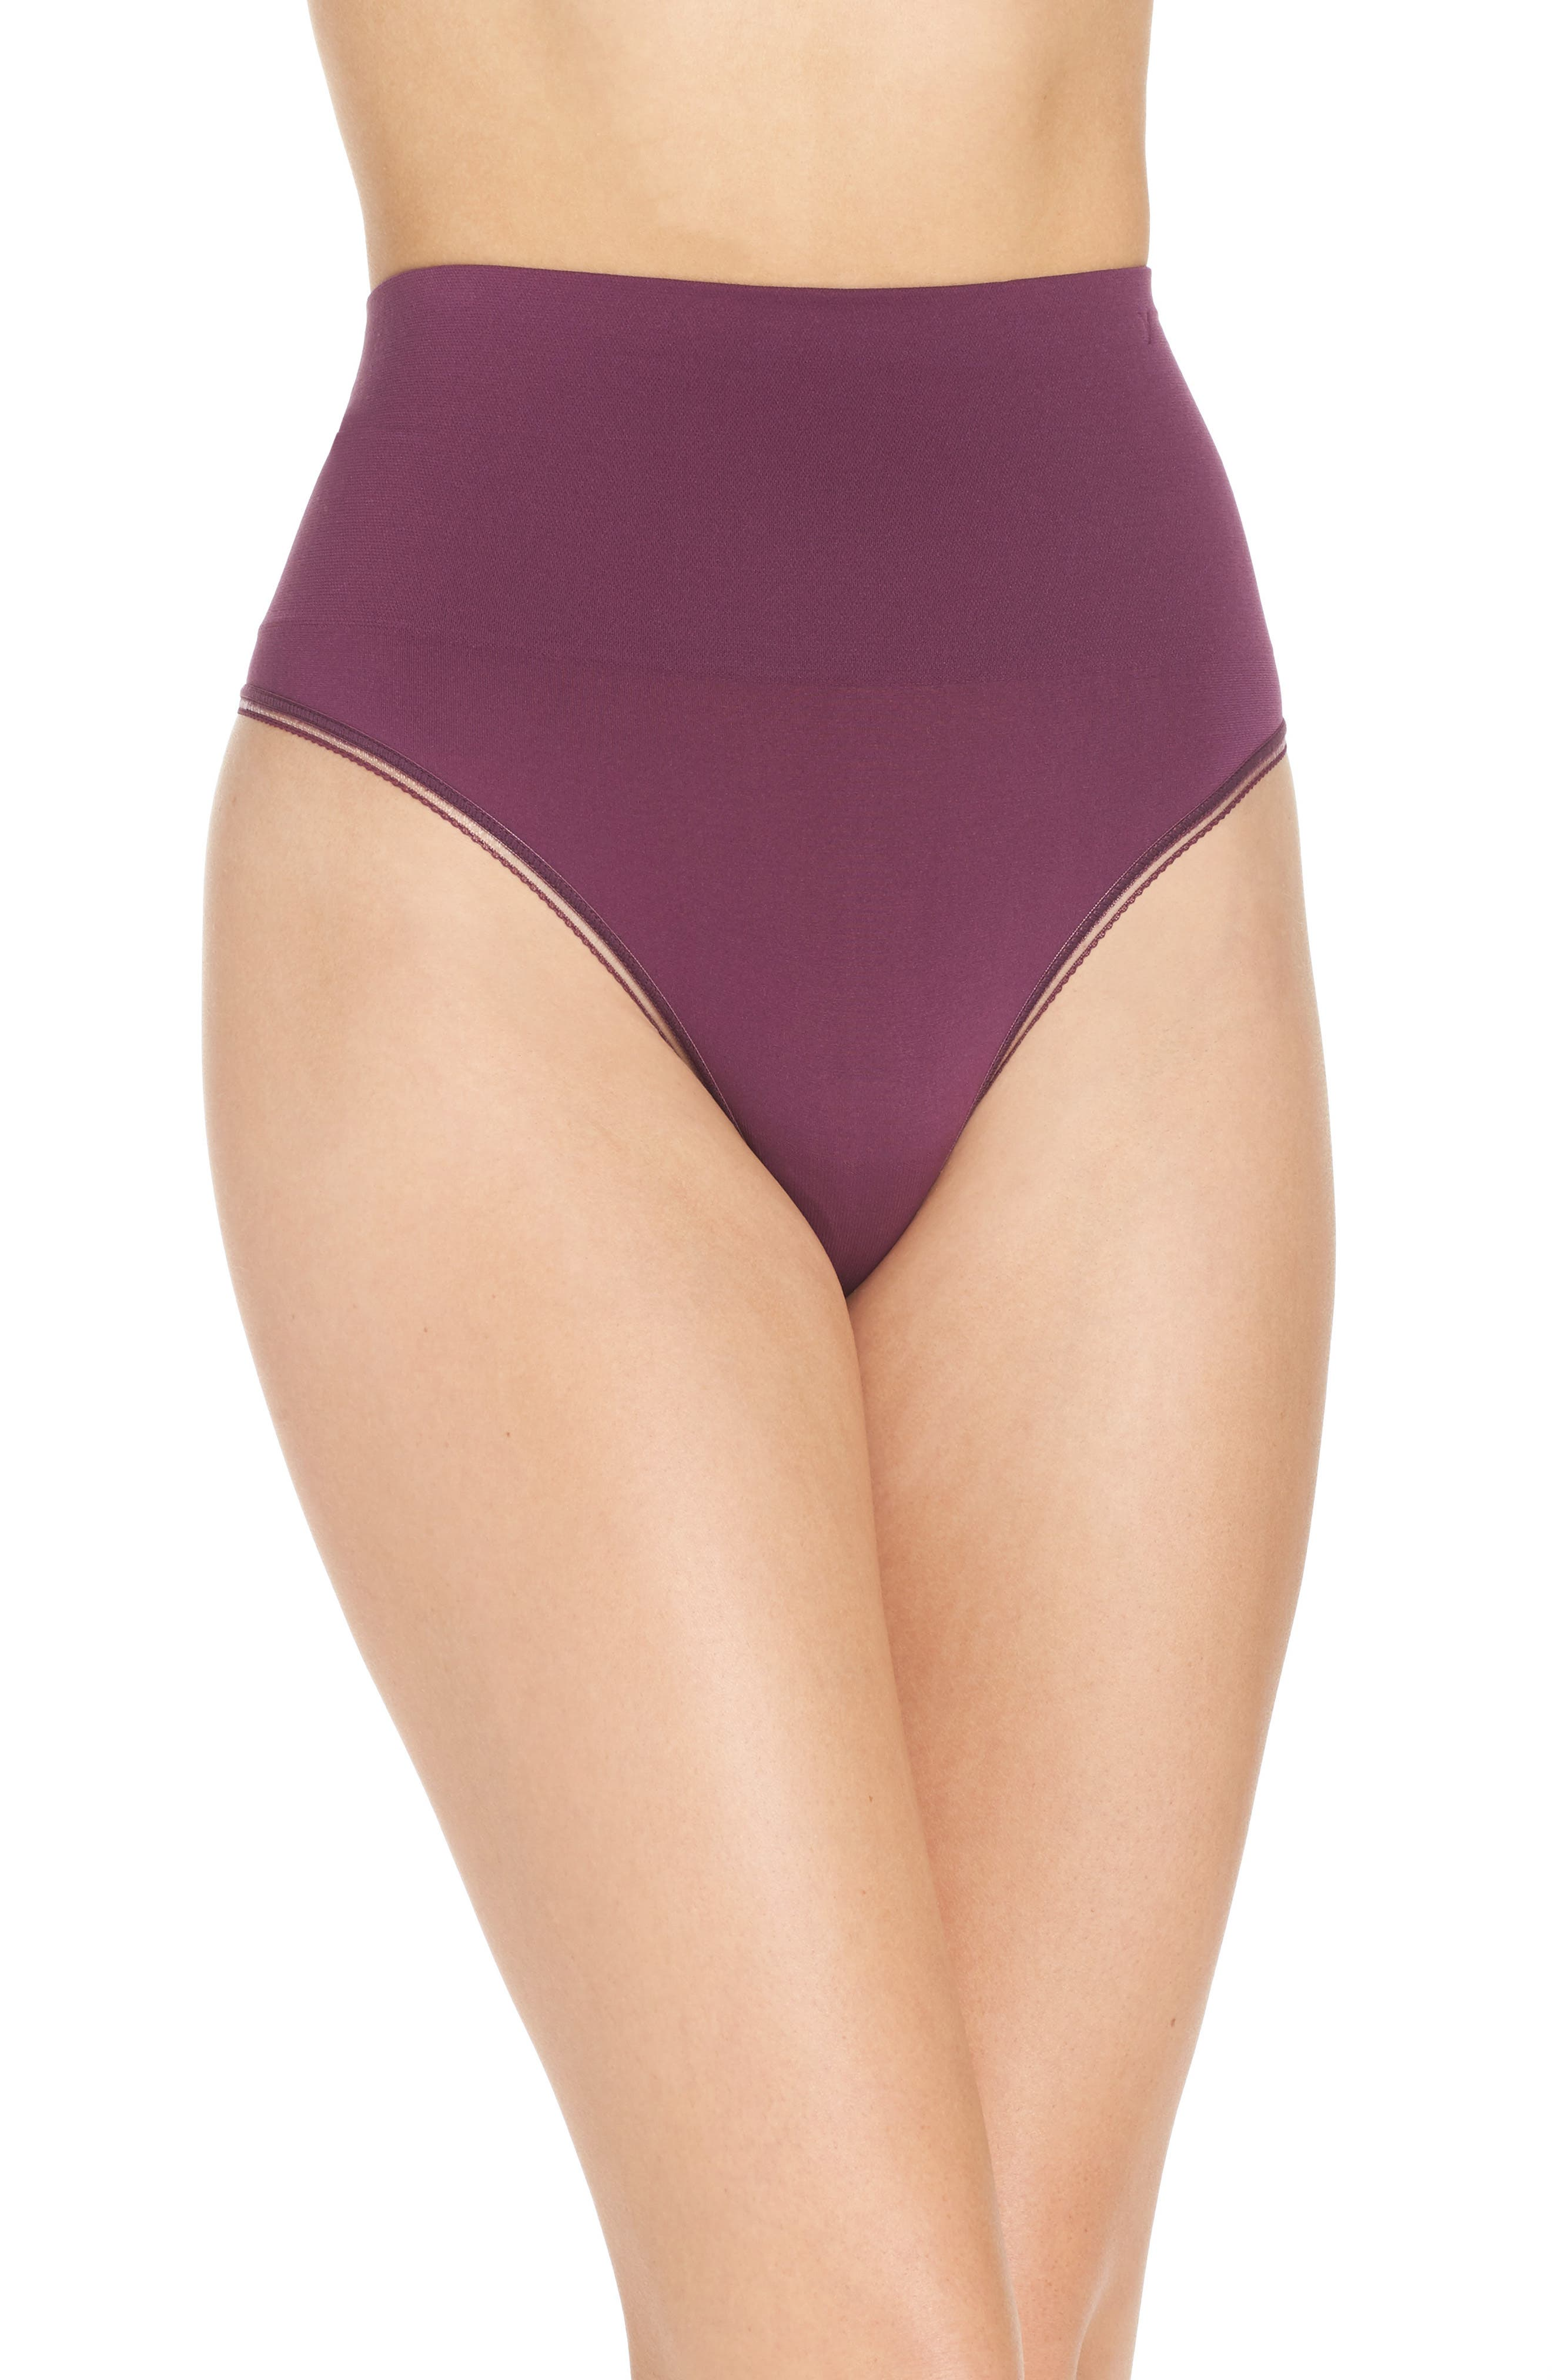 Alternate Image 1 Selected - Yummie Ultralight Seamless Shaping Thong (2 for $30)